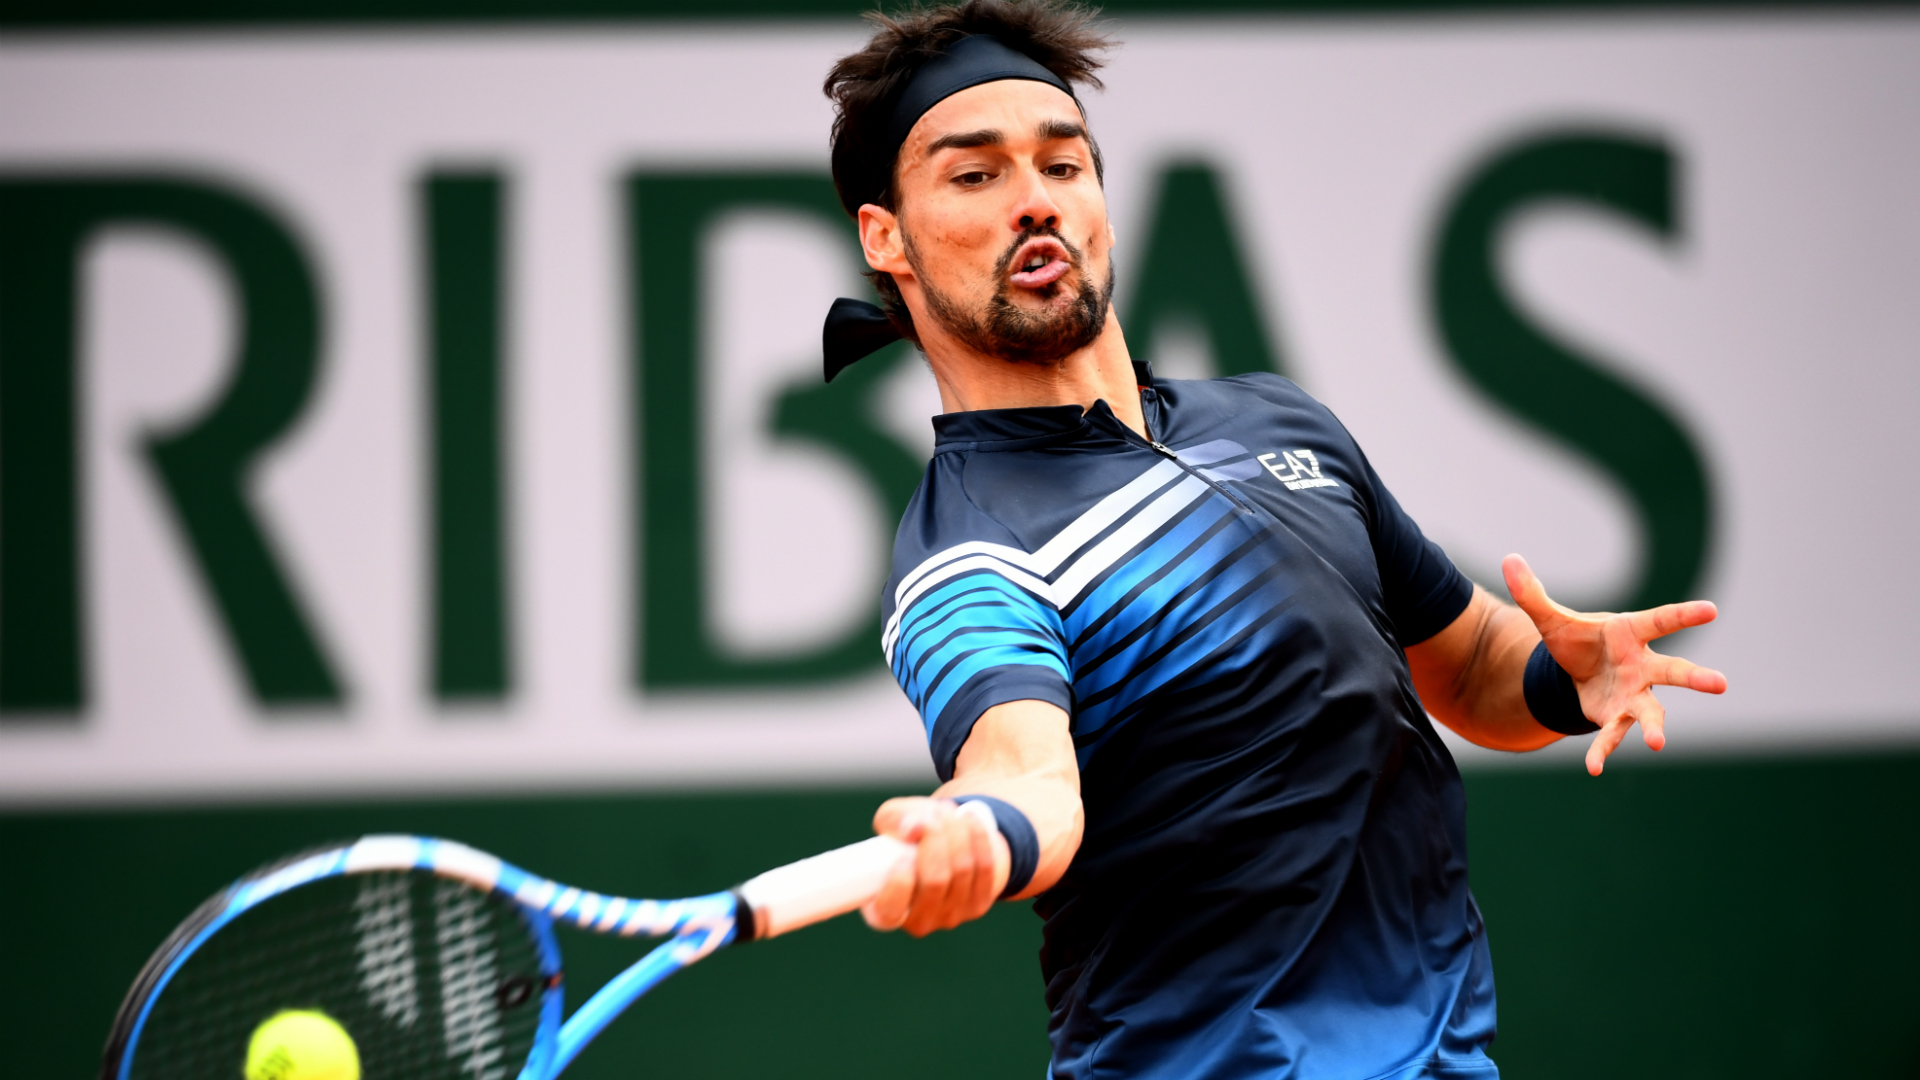 Not since the ATP world rankings were first established in 1973 has there been an older entrant to the top 10 than Italy's Fabio Fognini.